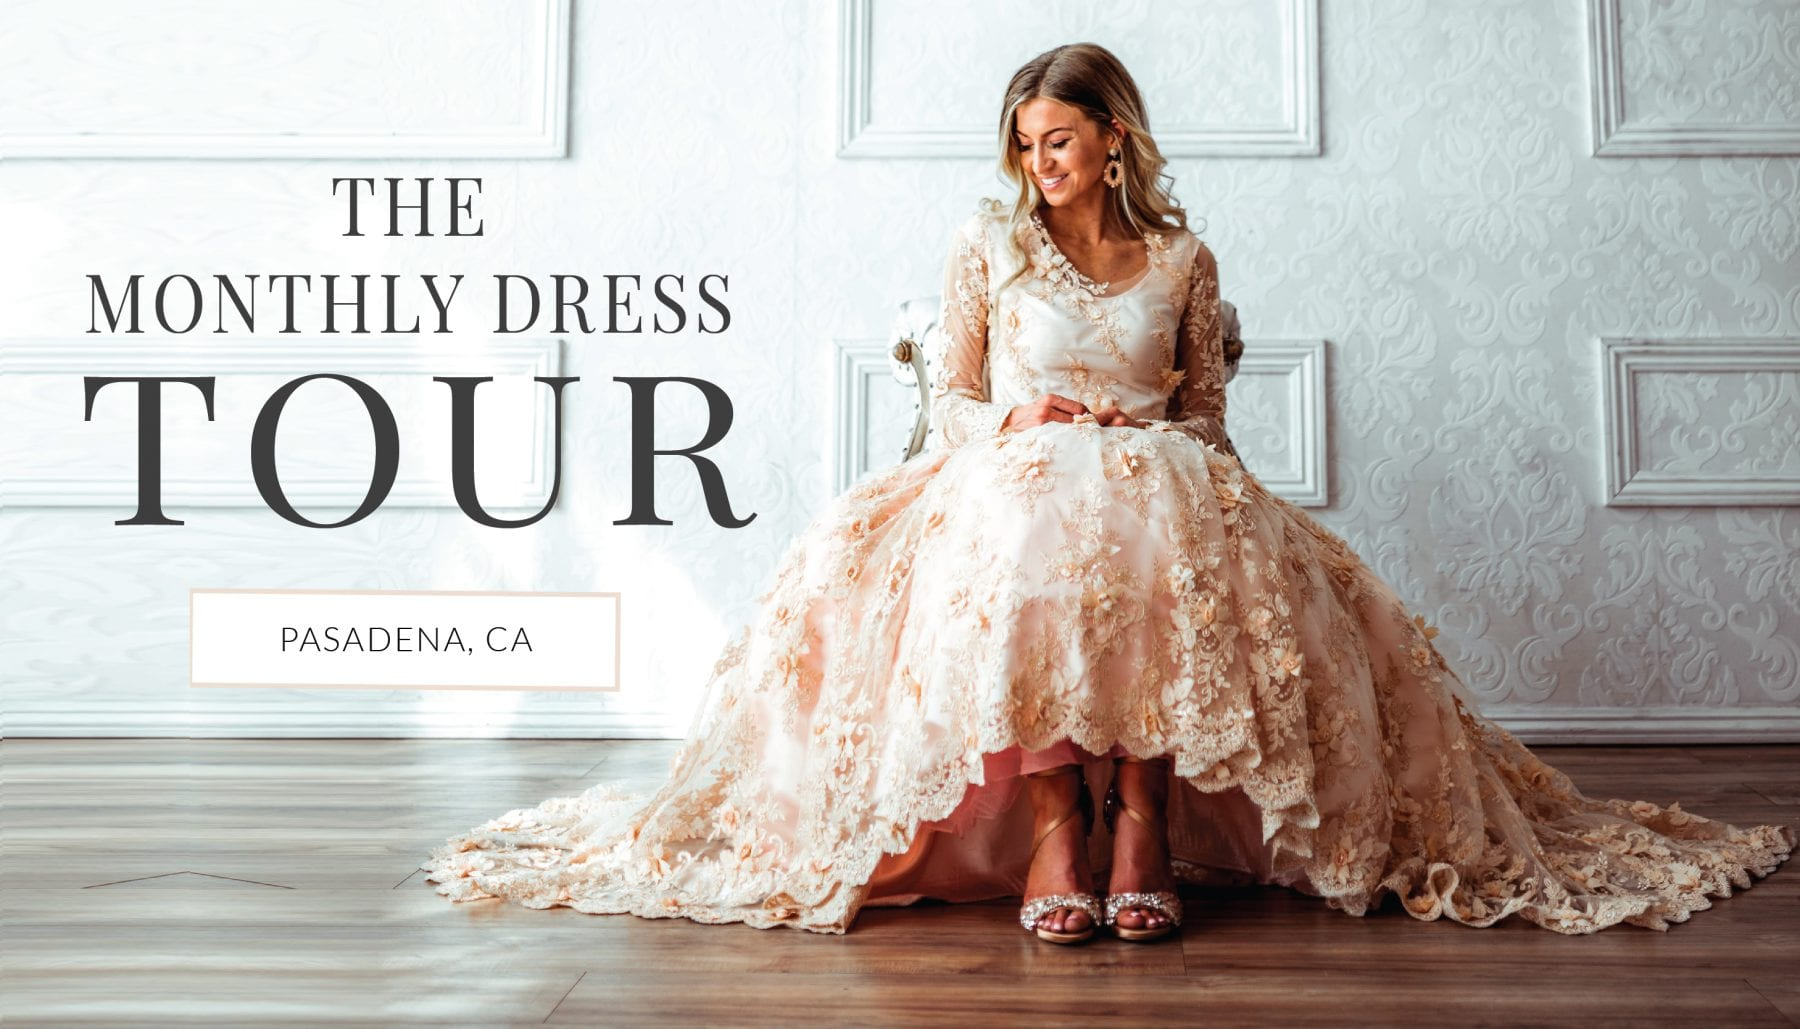 Pasadena Monthly Dress Tour